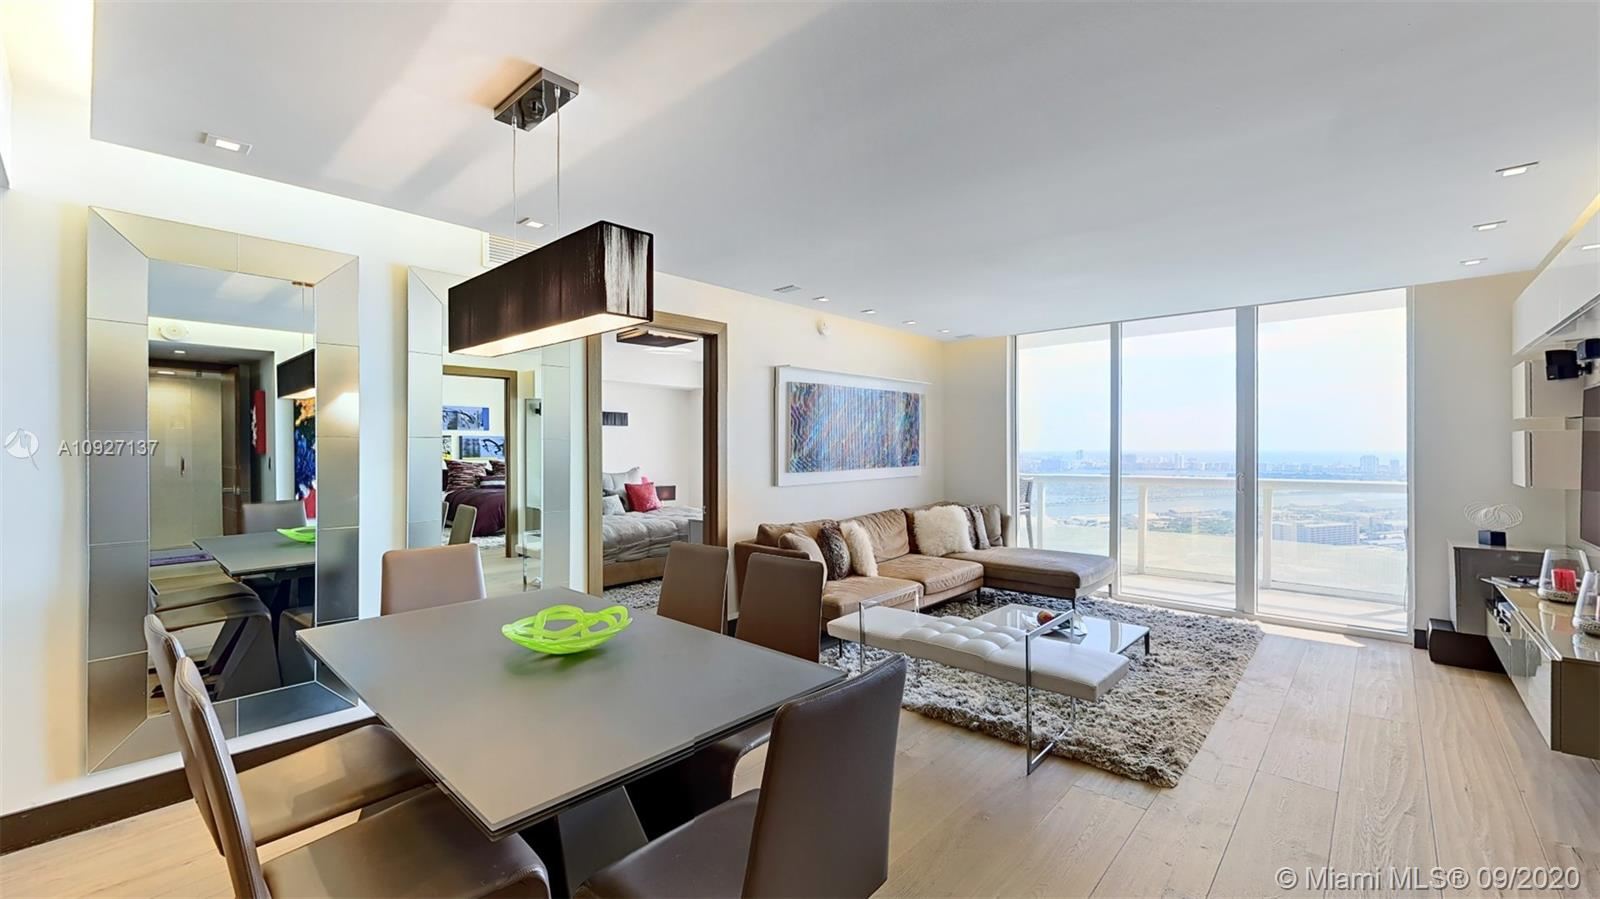 This stunningly upgraded residence features direct unobstructed views of Biscayne Bay and Miami Beach that will greet you as soon as you step in! A masterpiece of design with attention to details, this unit has spectacular views of Biscayne Bay and the City from every room!